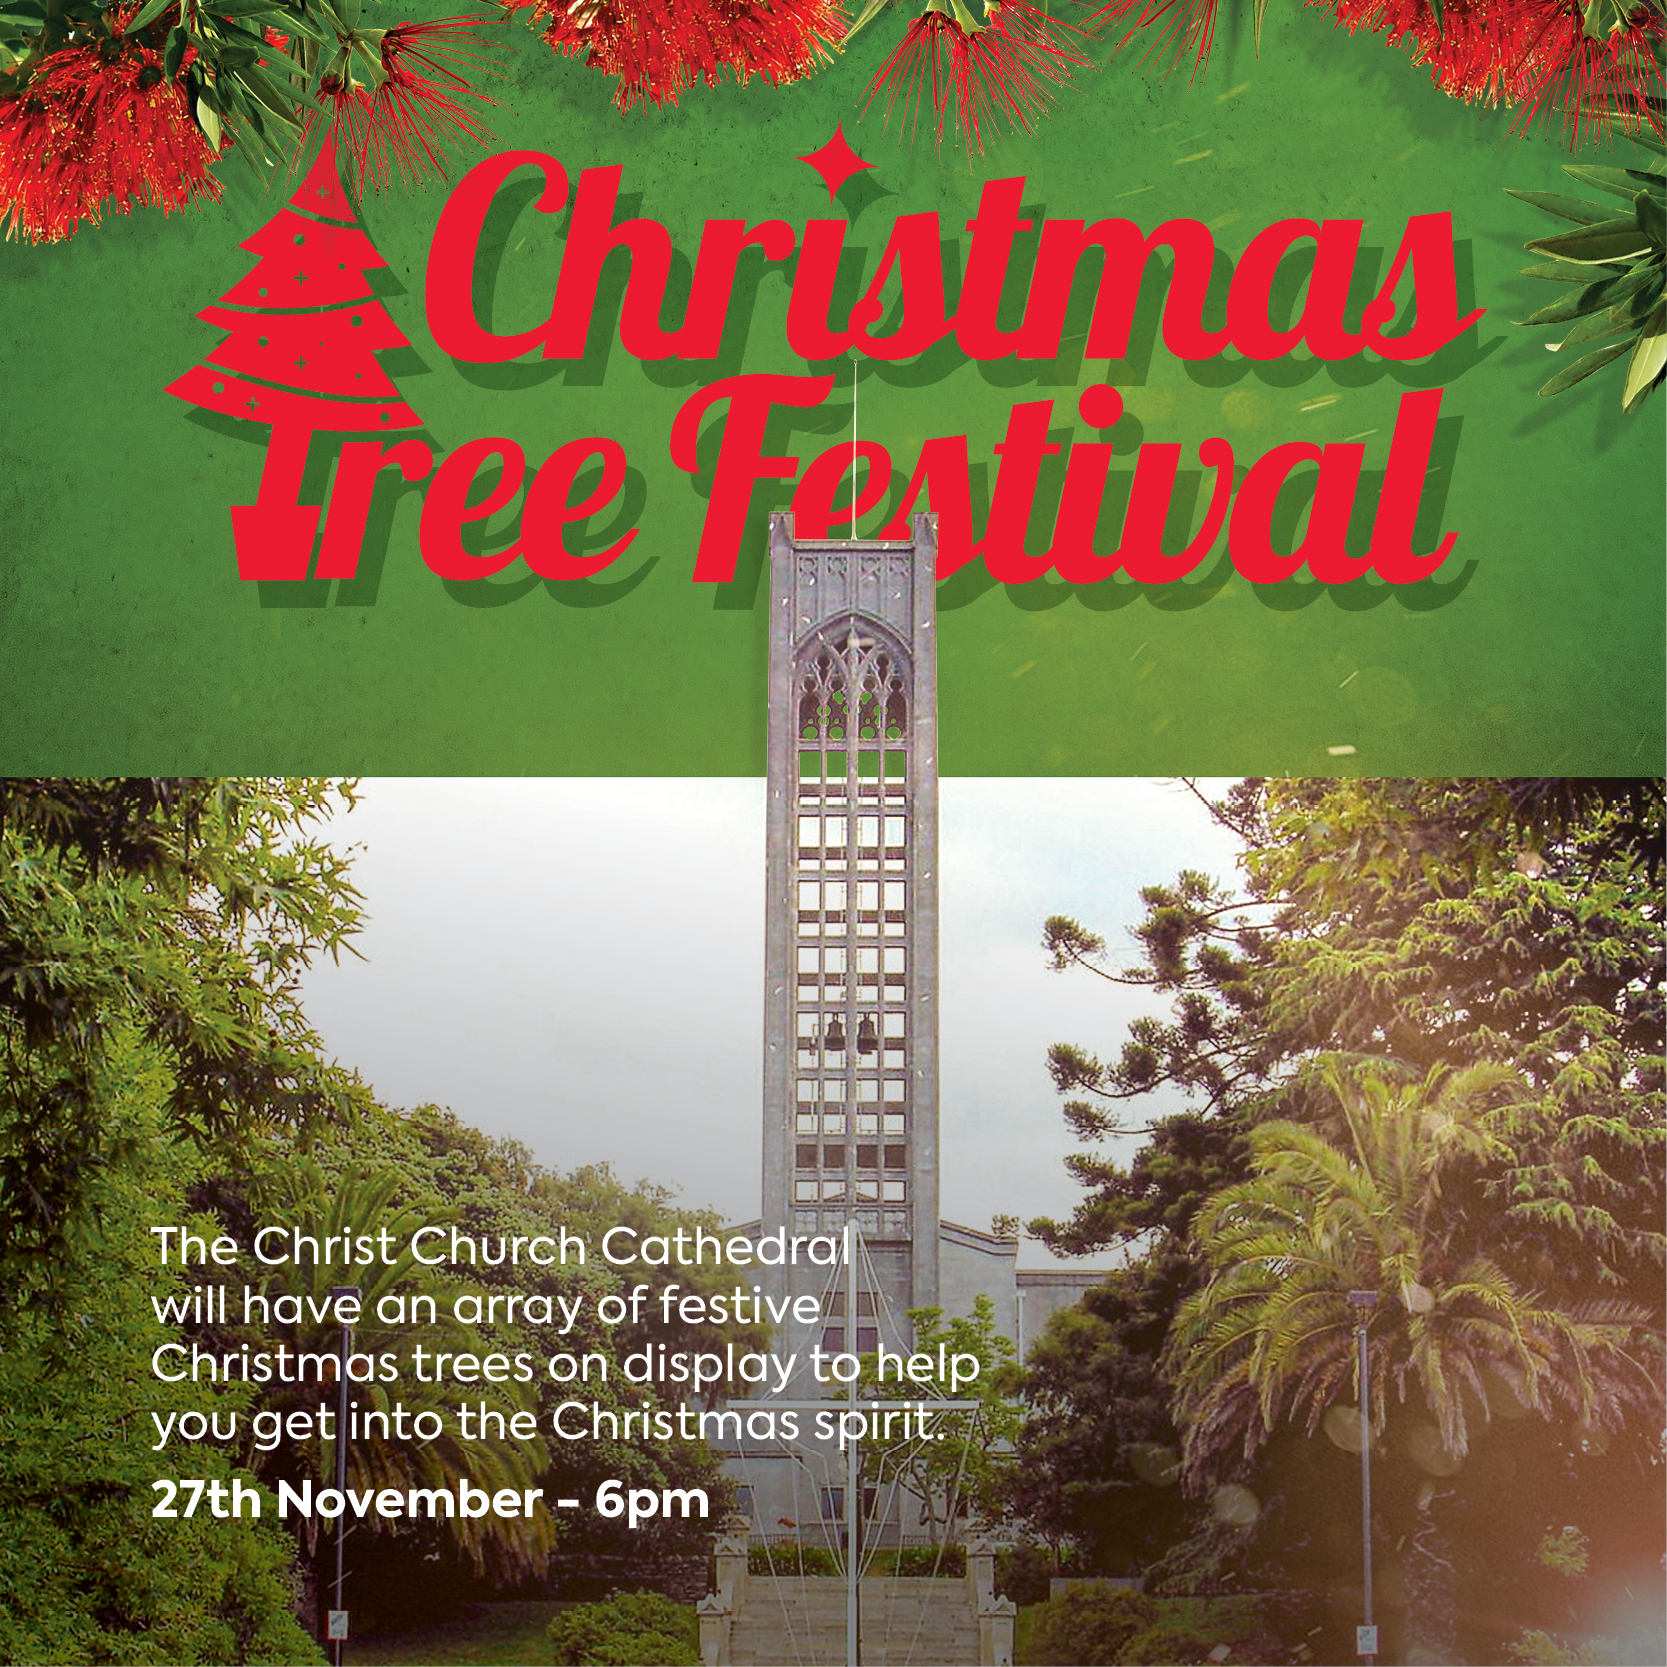 Christmas City Festival | Christmas Tree Festival at Nelson Cathedral | The Christ Church Cathedral | Nelson City Christmas in the City